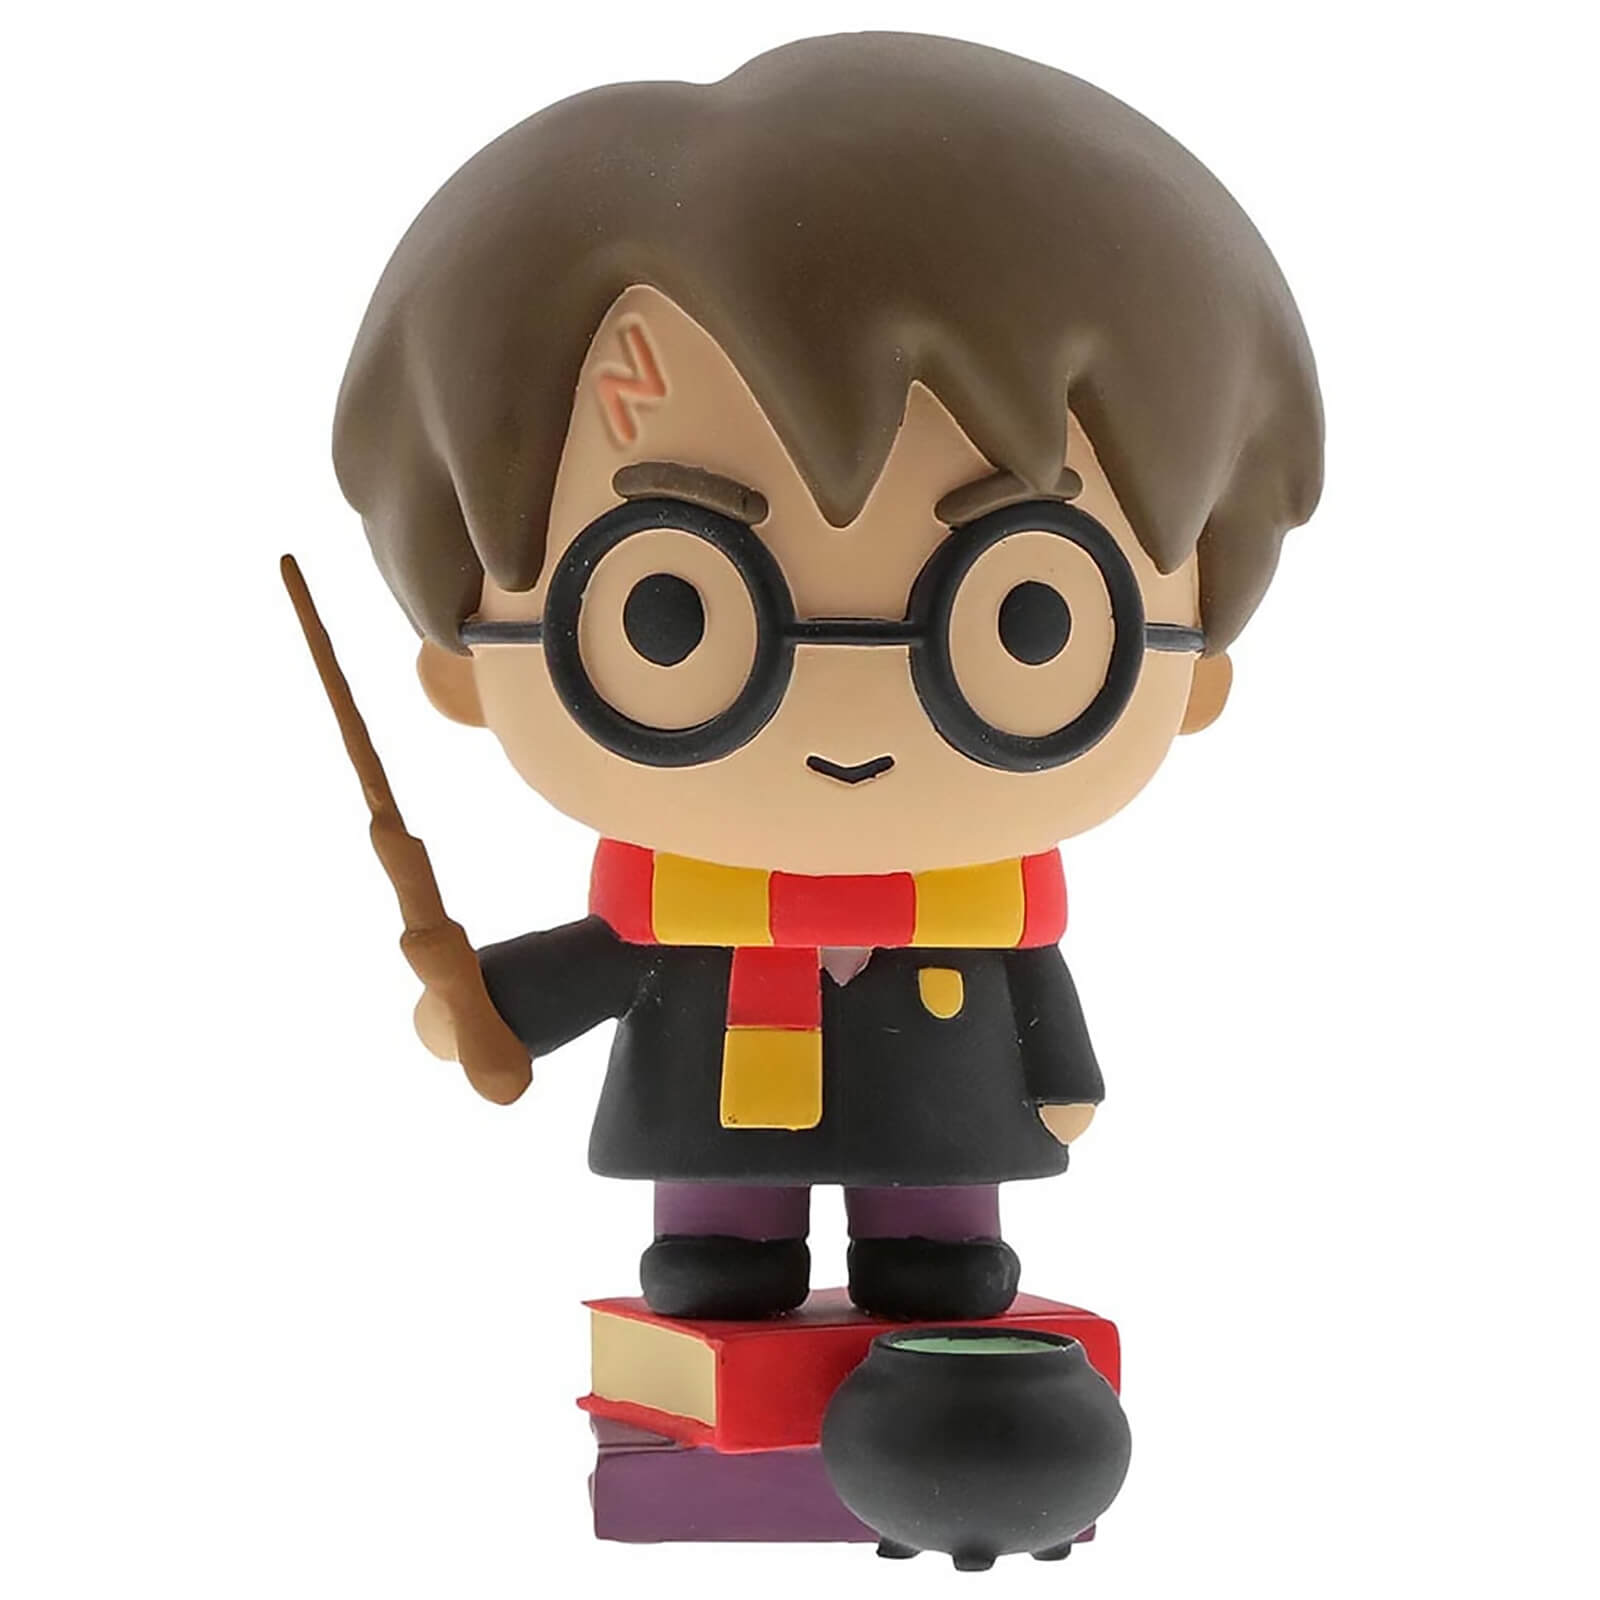 Image of The Wizarding World of Harry Potter Chibi Style Harry Potter 8.0cm